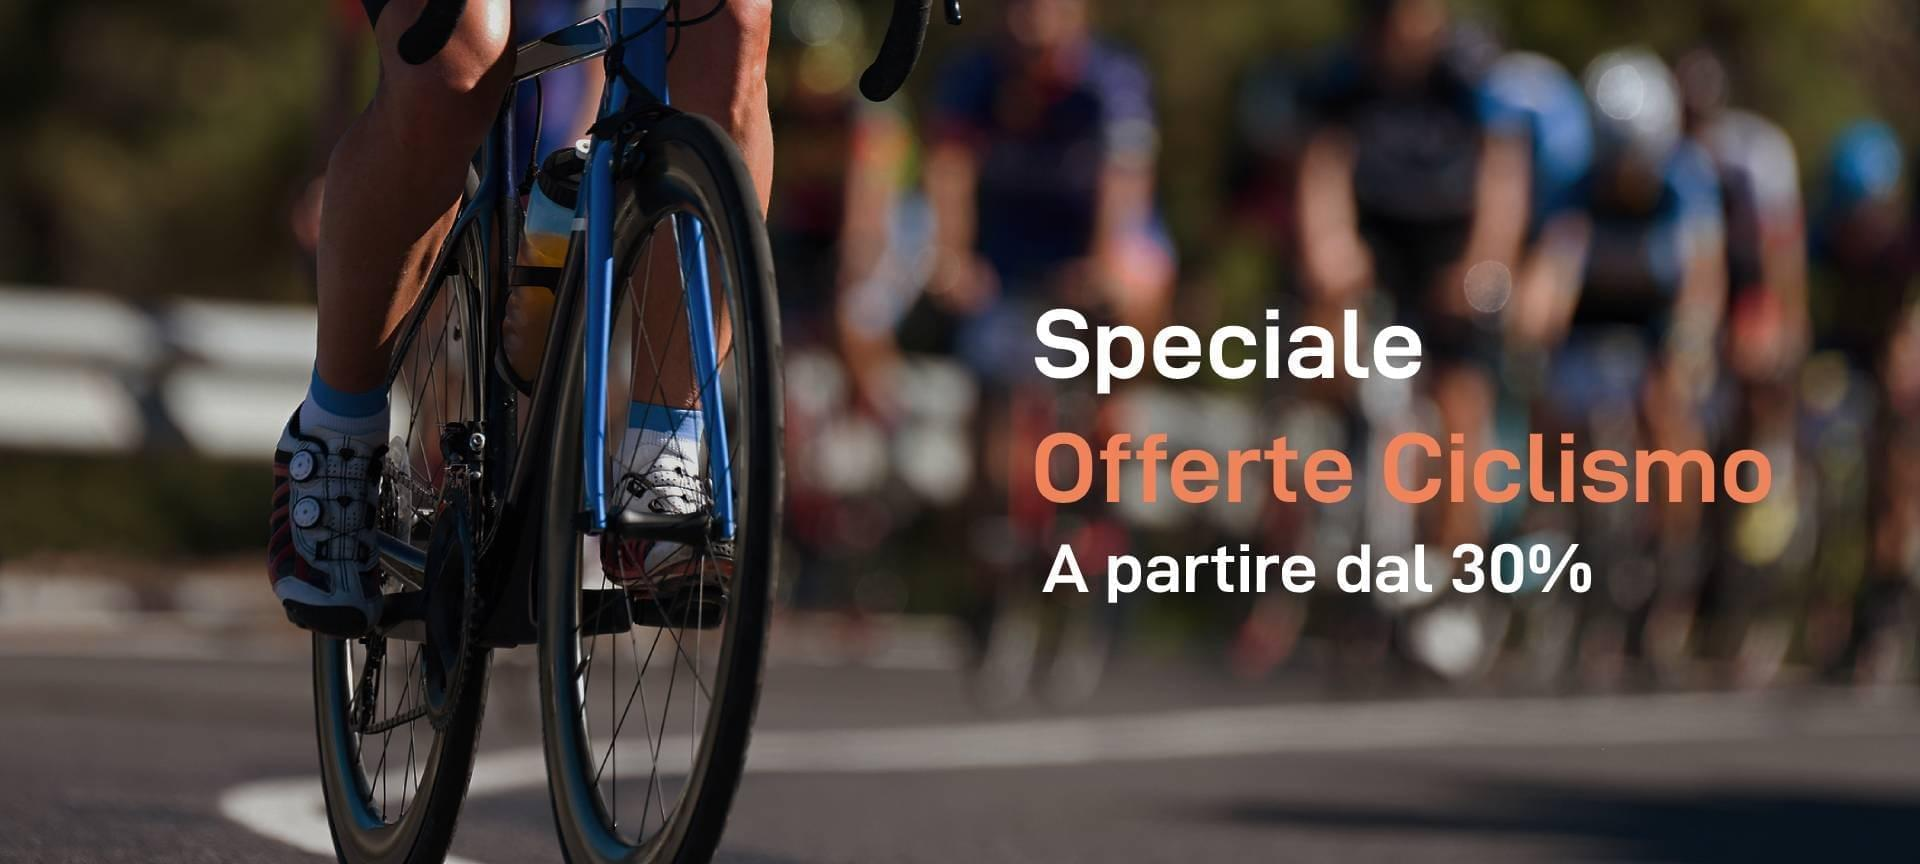 Speciale Offerta ciclismo